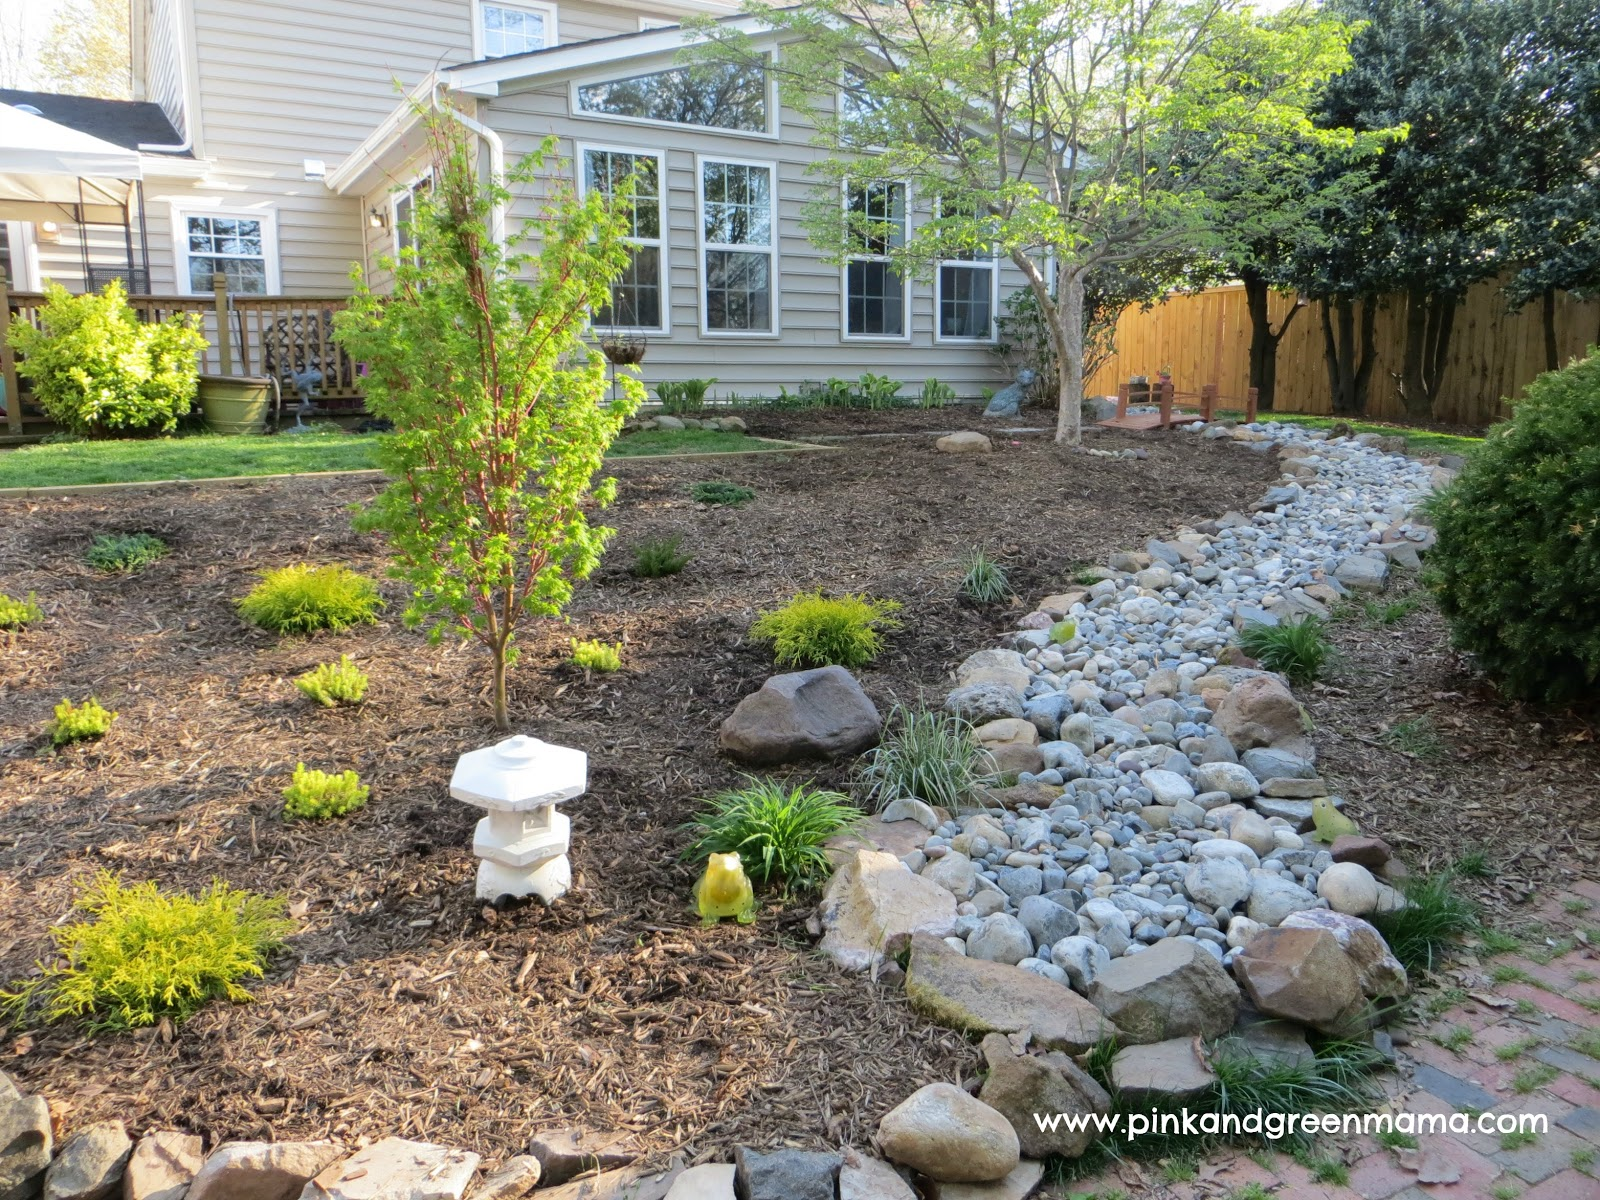 Small backyard makeover ideas on a budget for Backyard remodel ideas on a budget